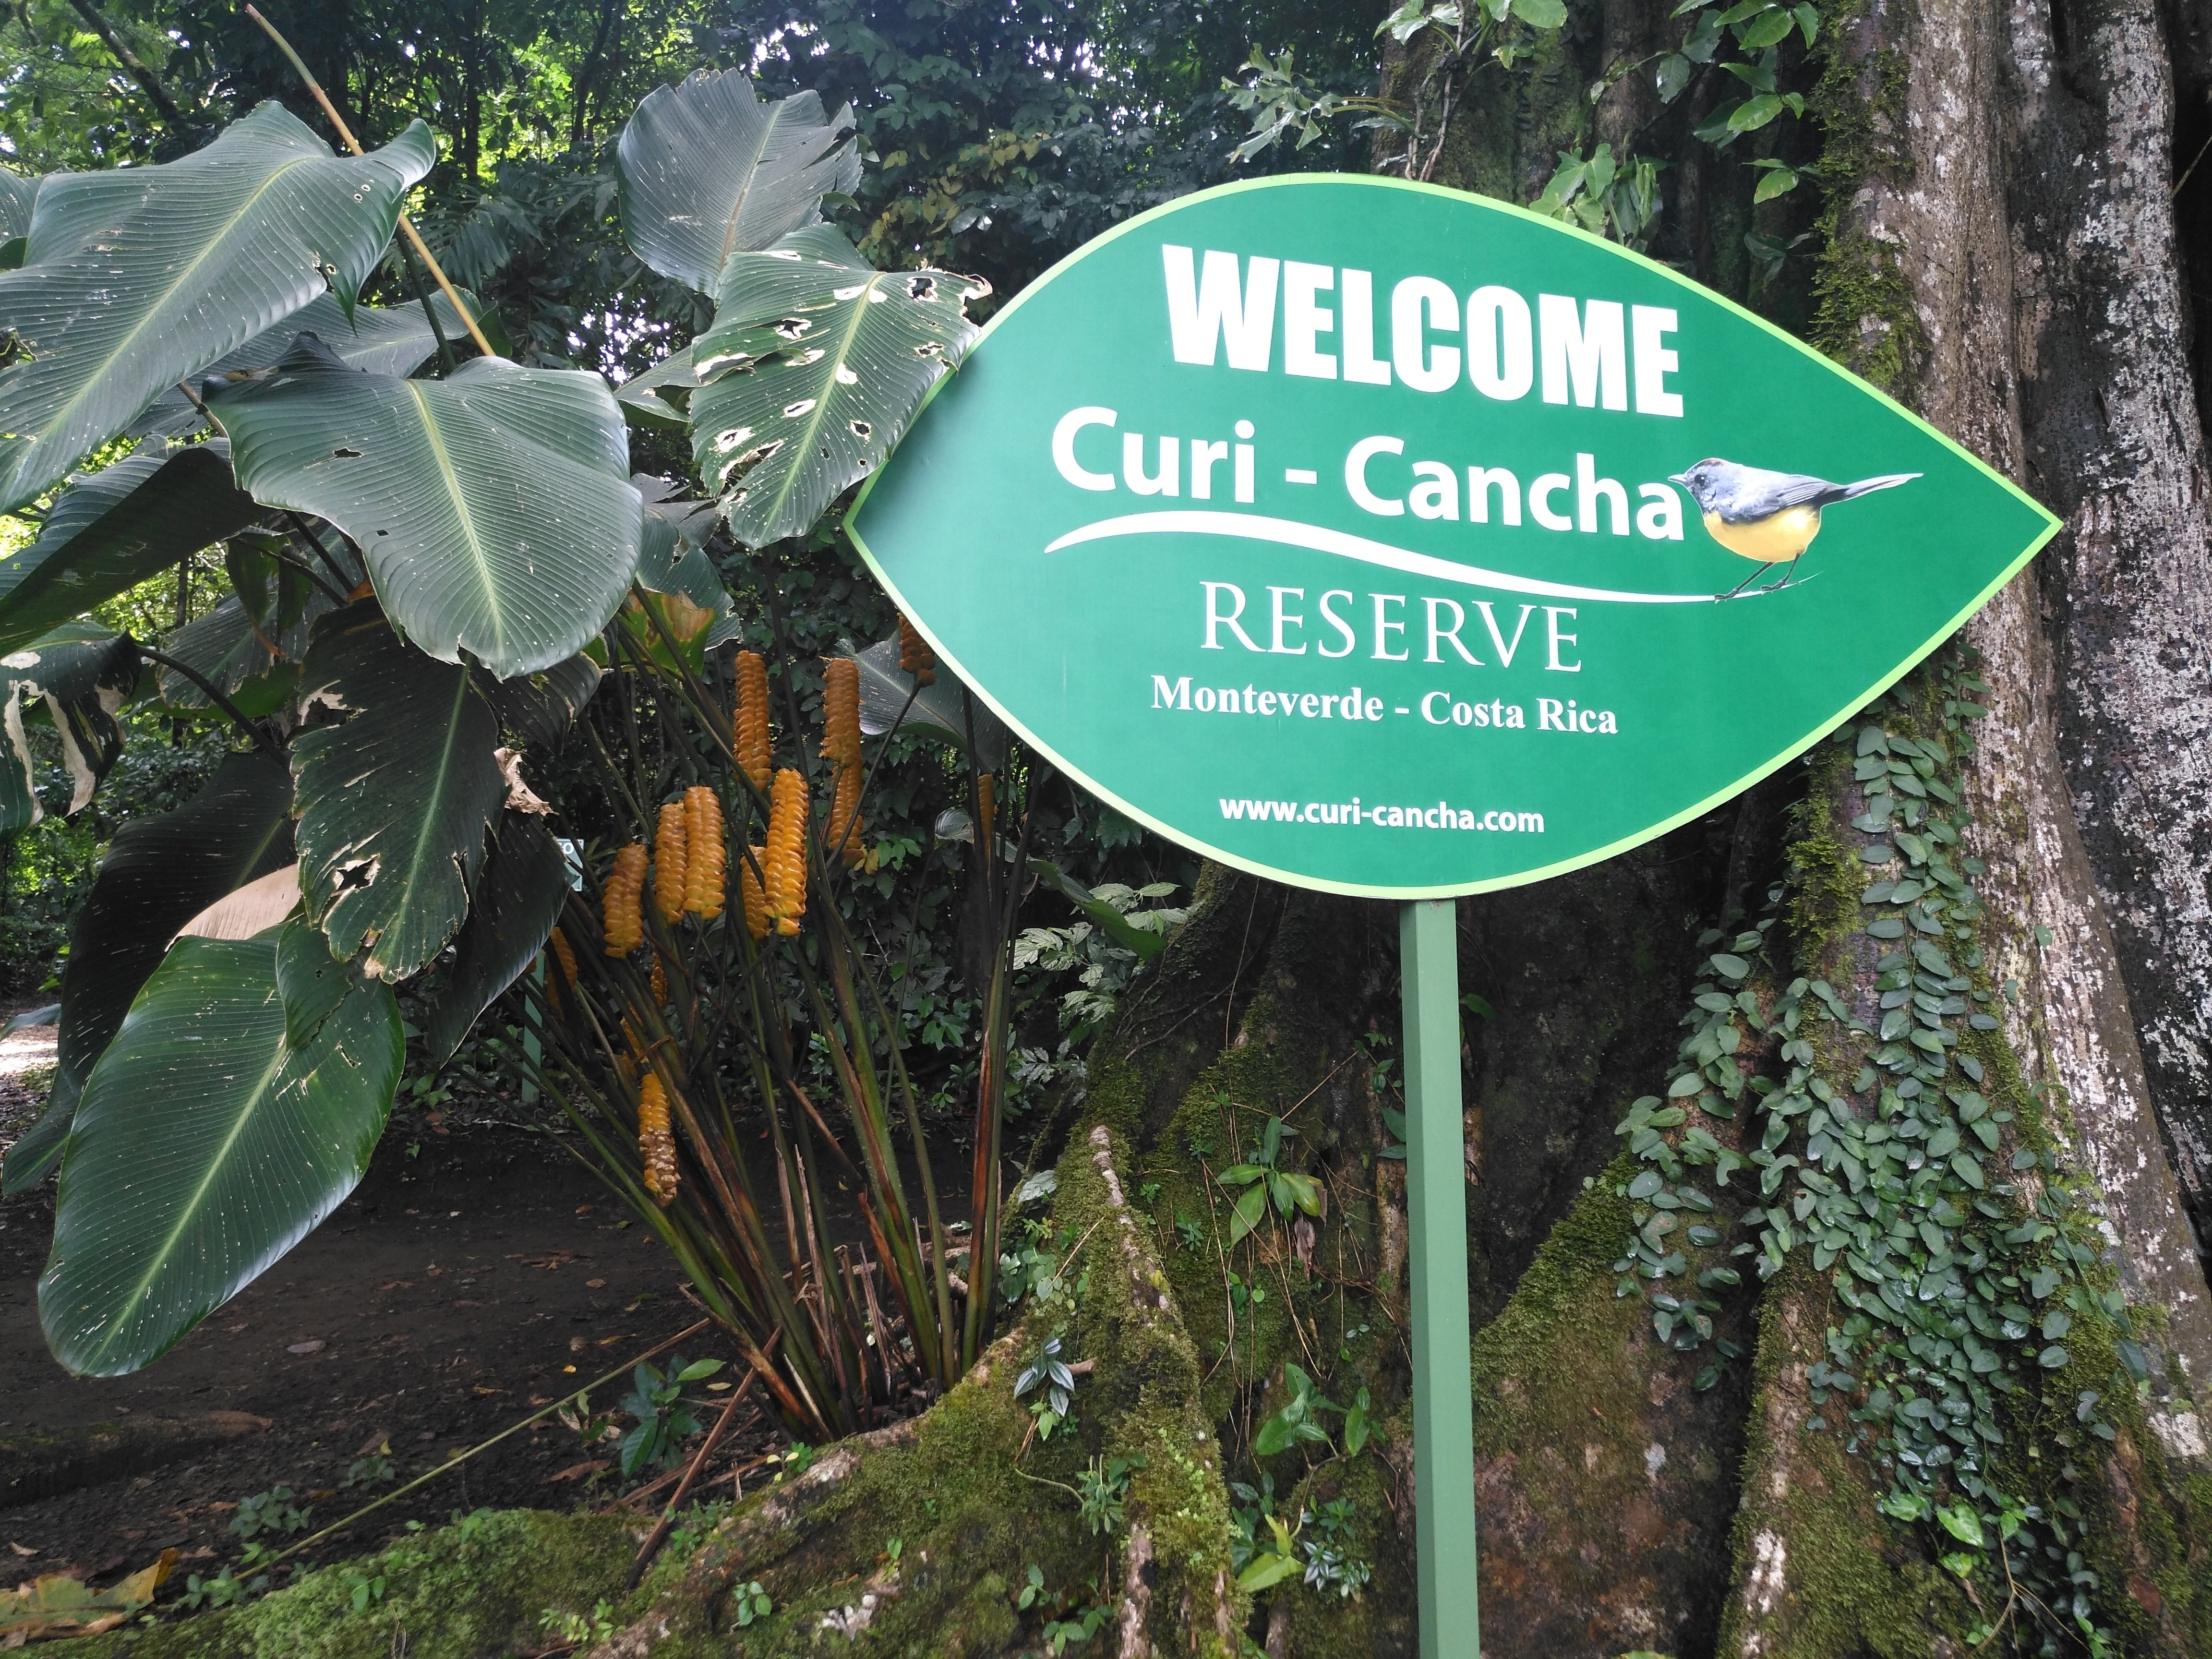 Entrance to curi-cancha reserve